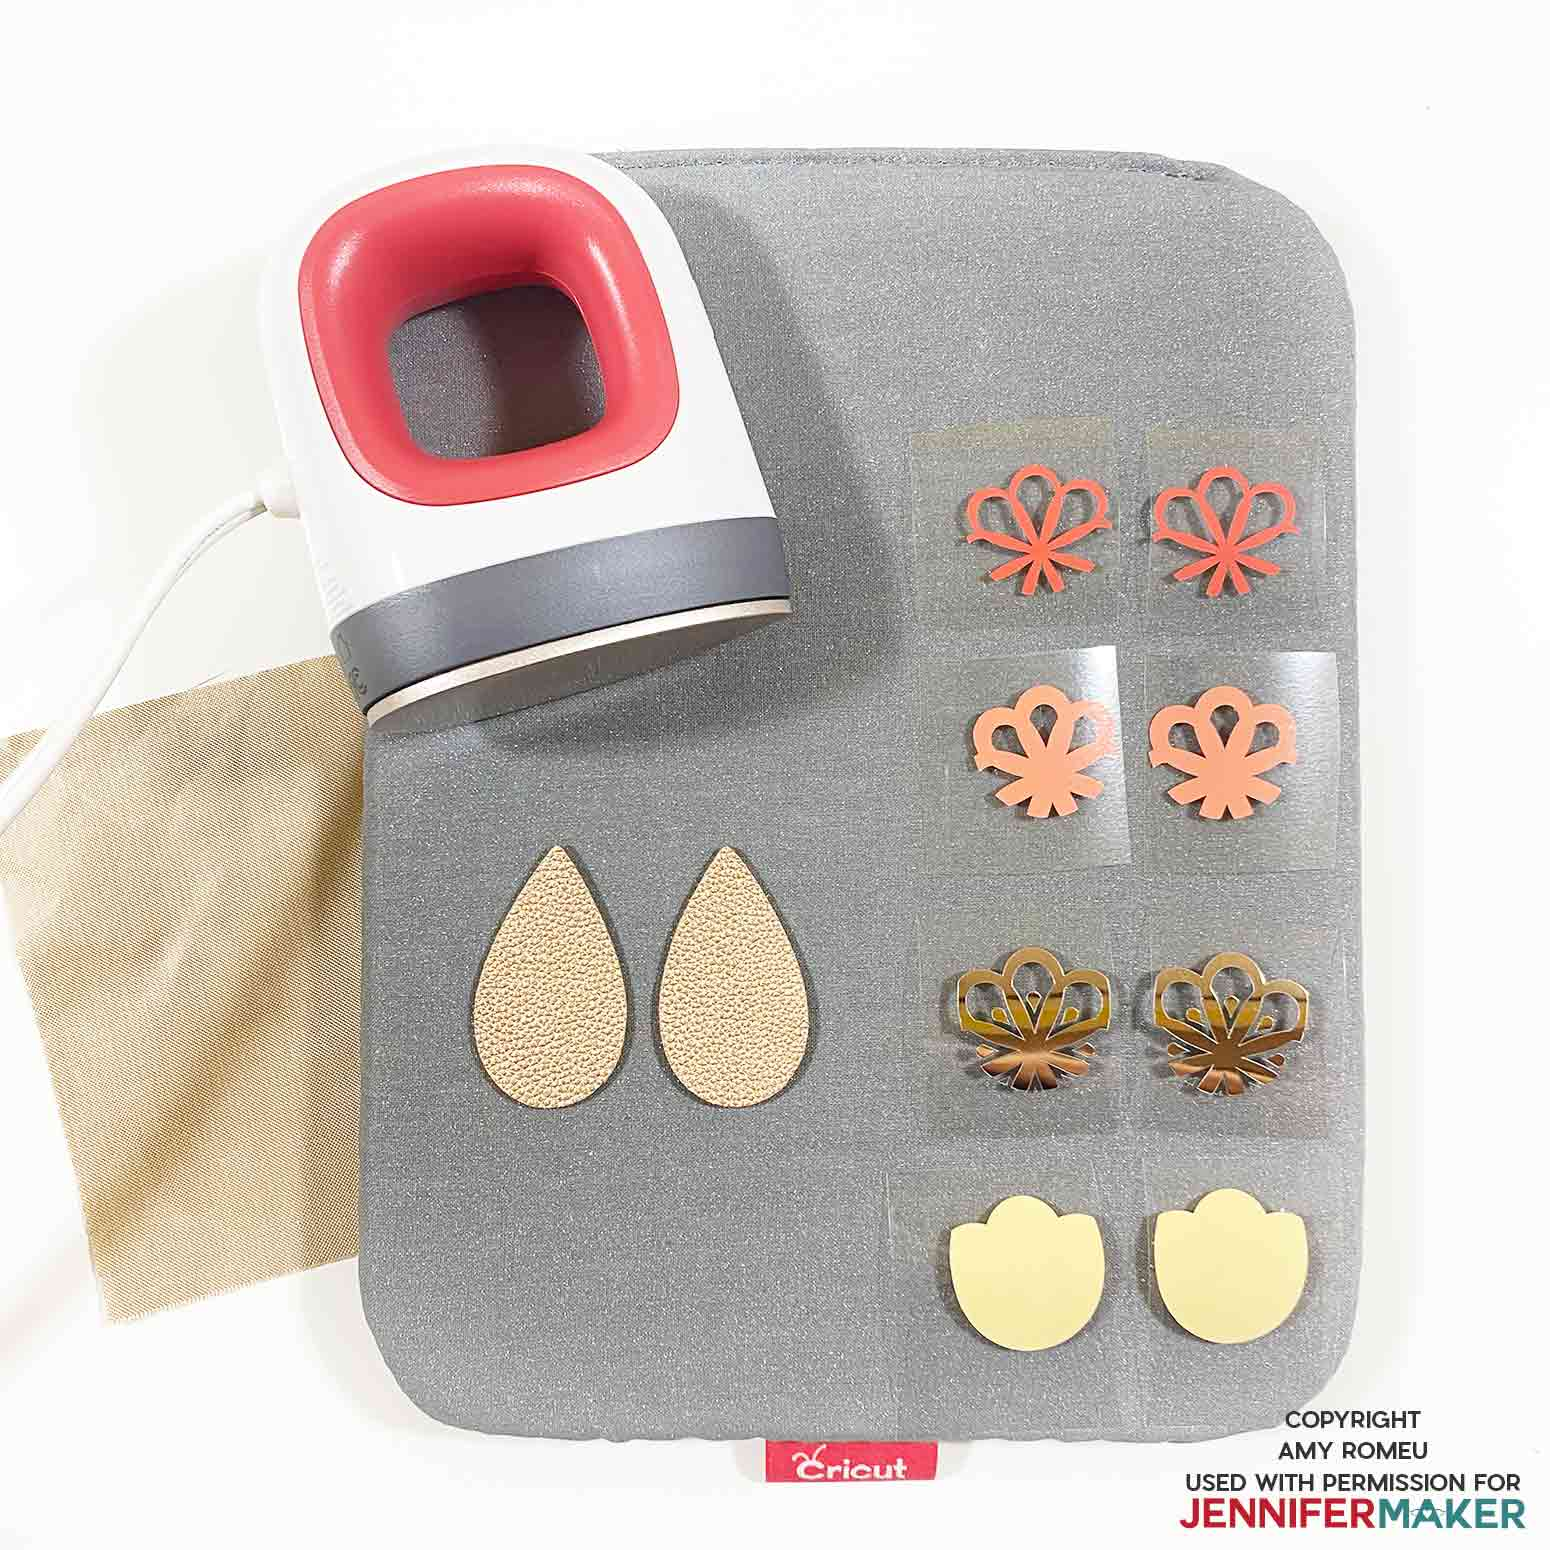 Cricut easy press mini and vinyl earring shapes on a pressing pad